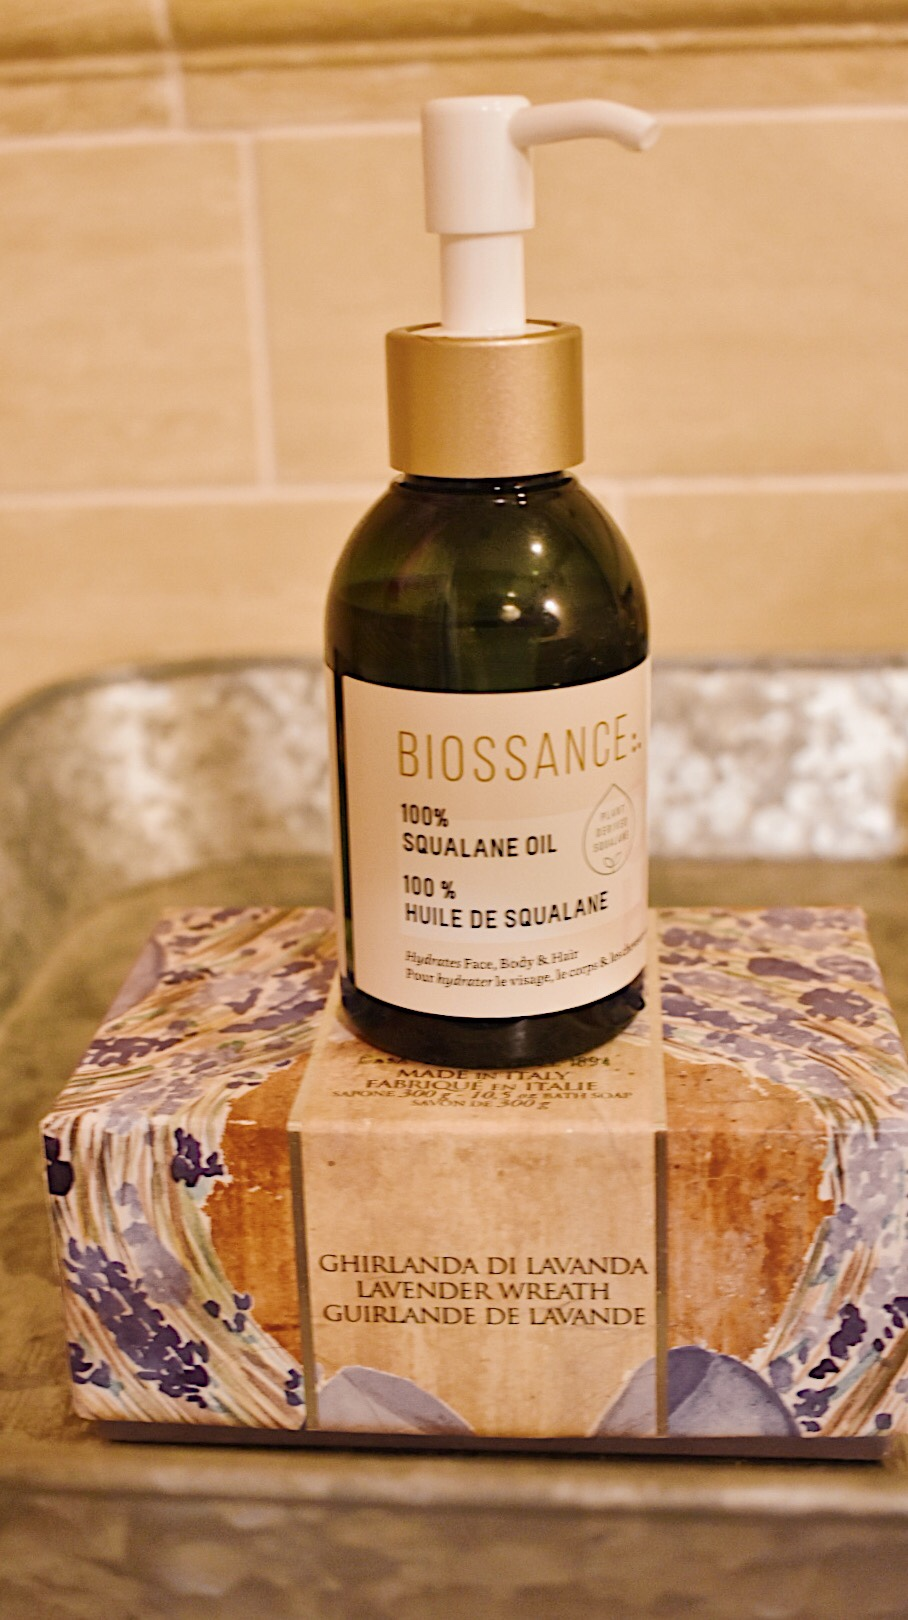 review of Biossance squalane oil